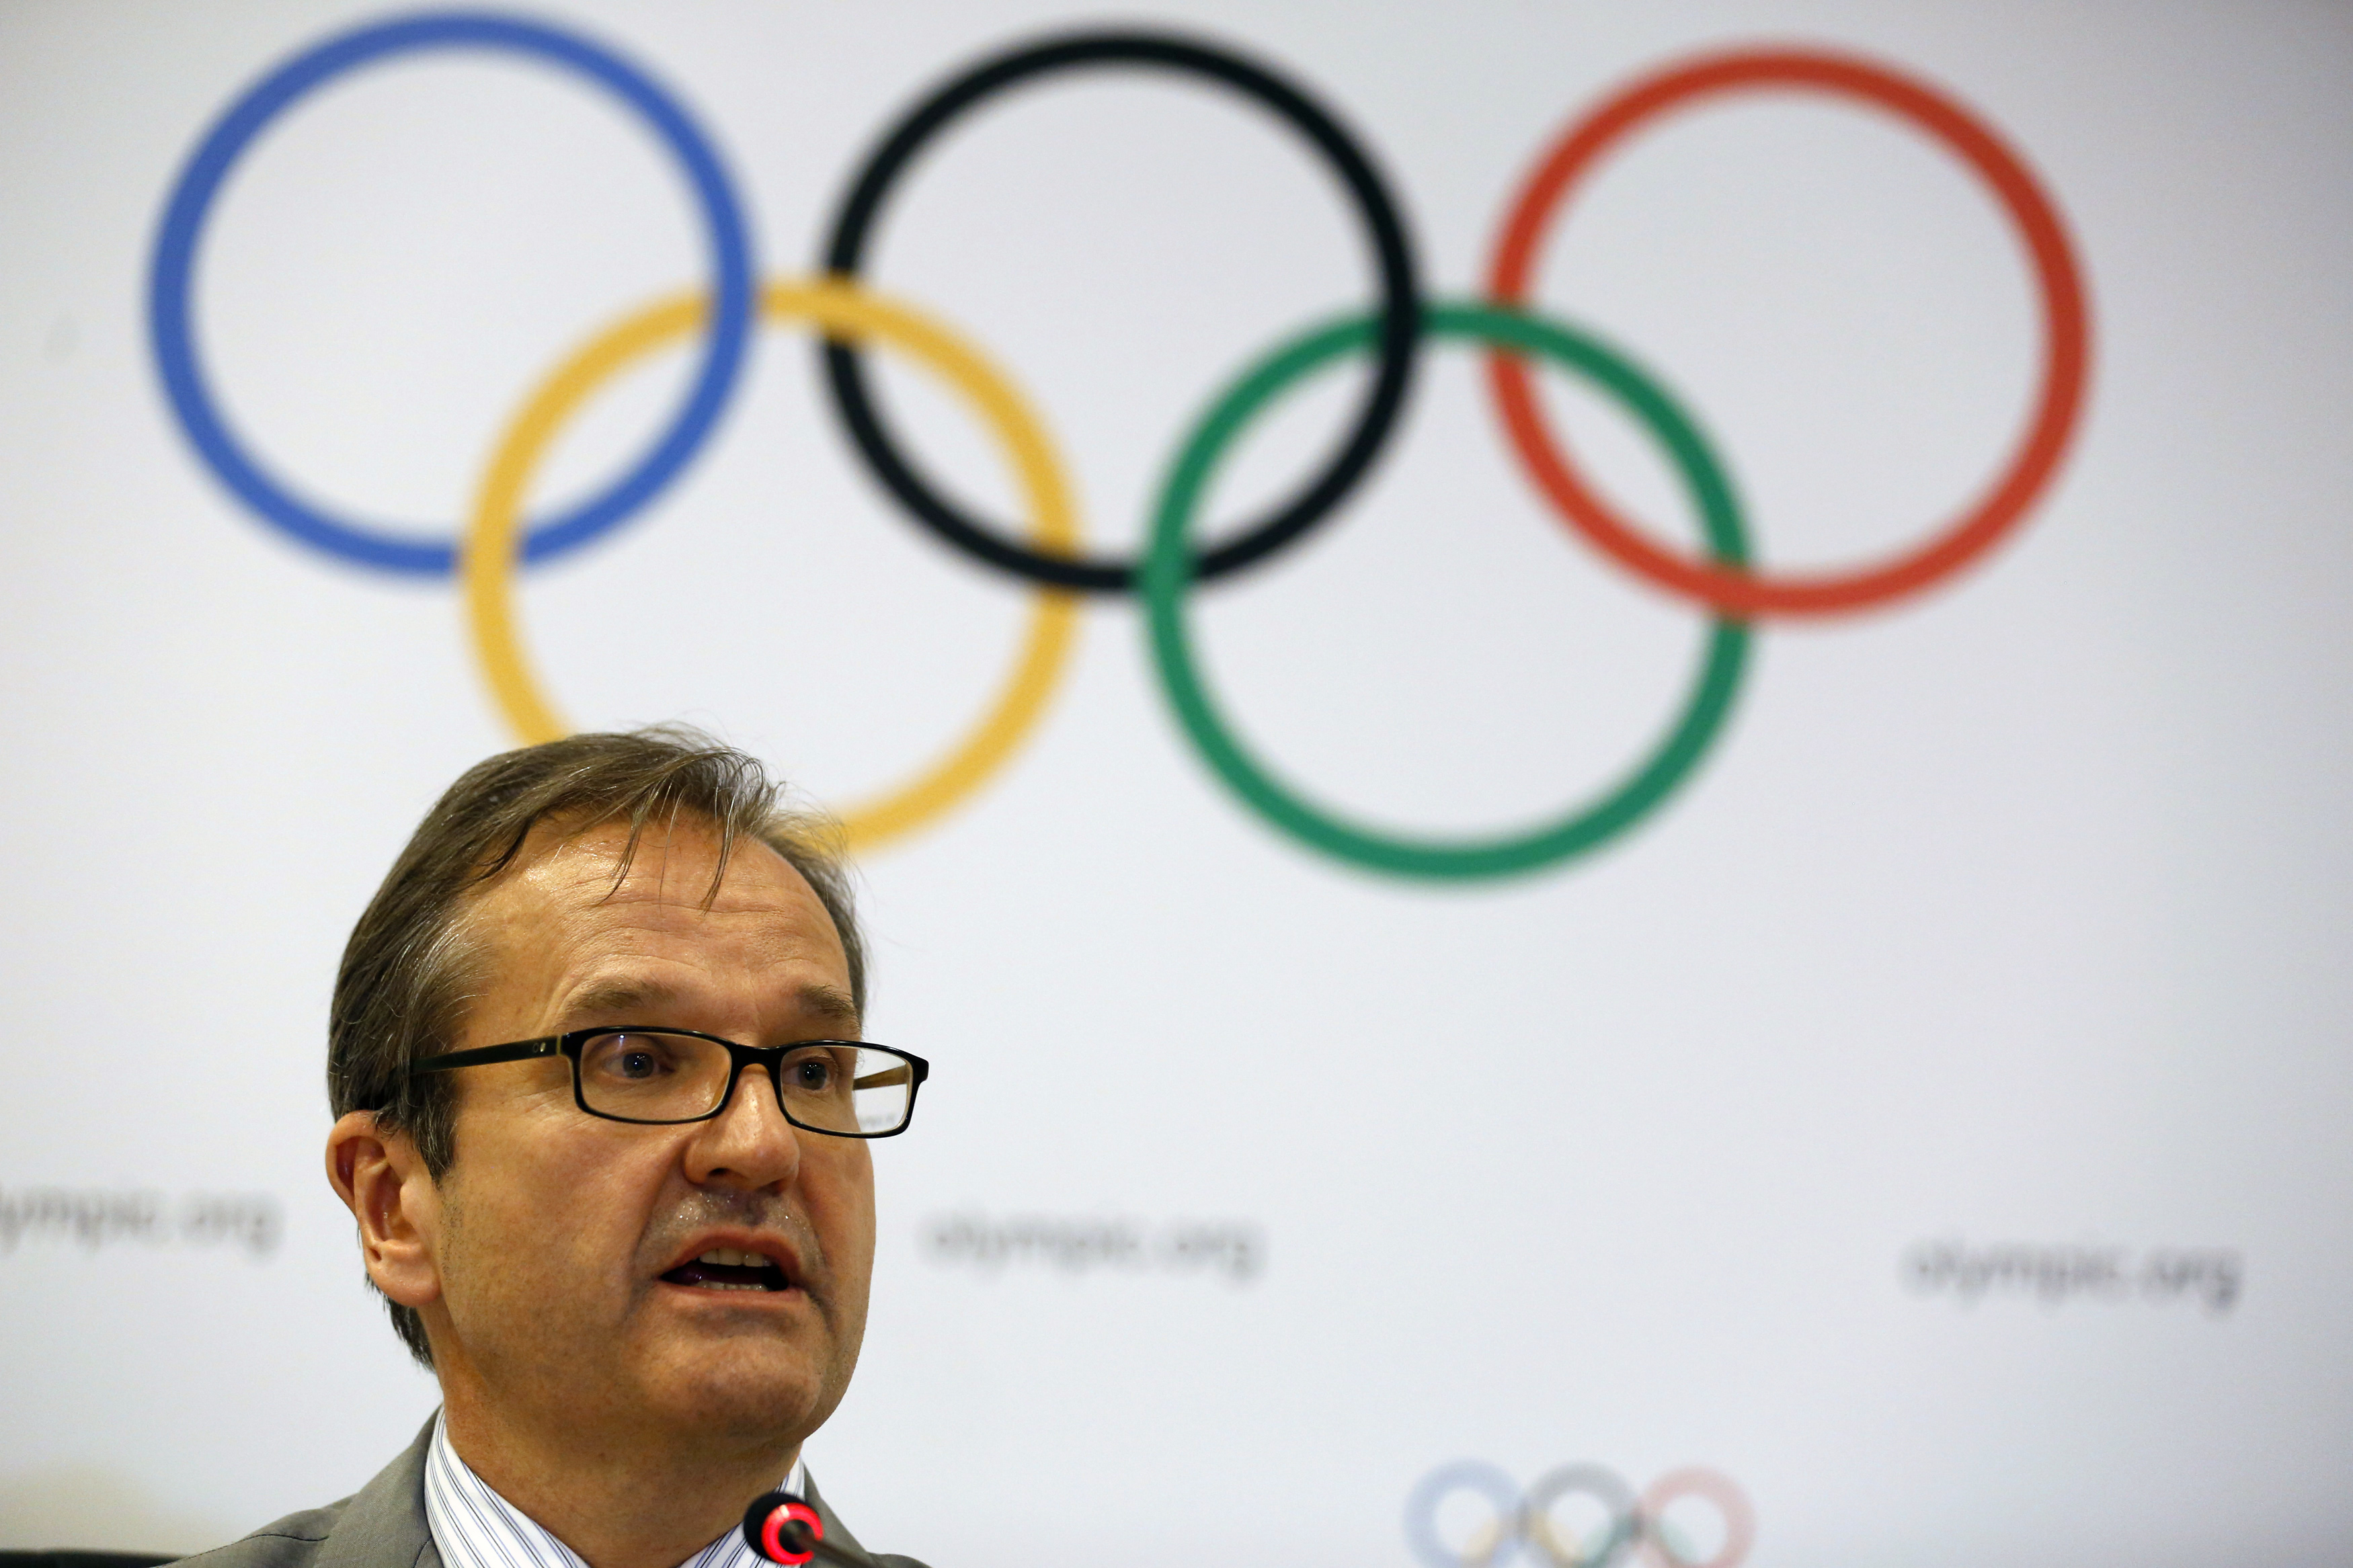 International Olympic Committee (IOC) spokesman Mark Adams speaks during a news conference in Rio de Janeiro February 26, 2015.  REUTERS/Pilar Olivares